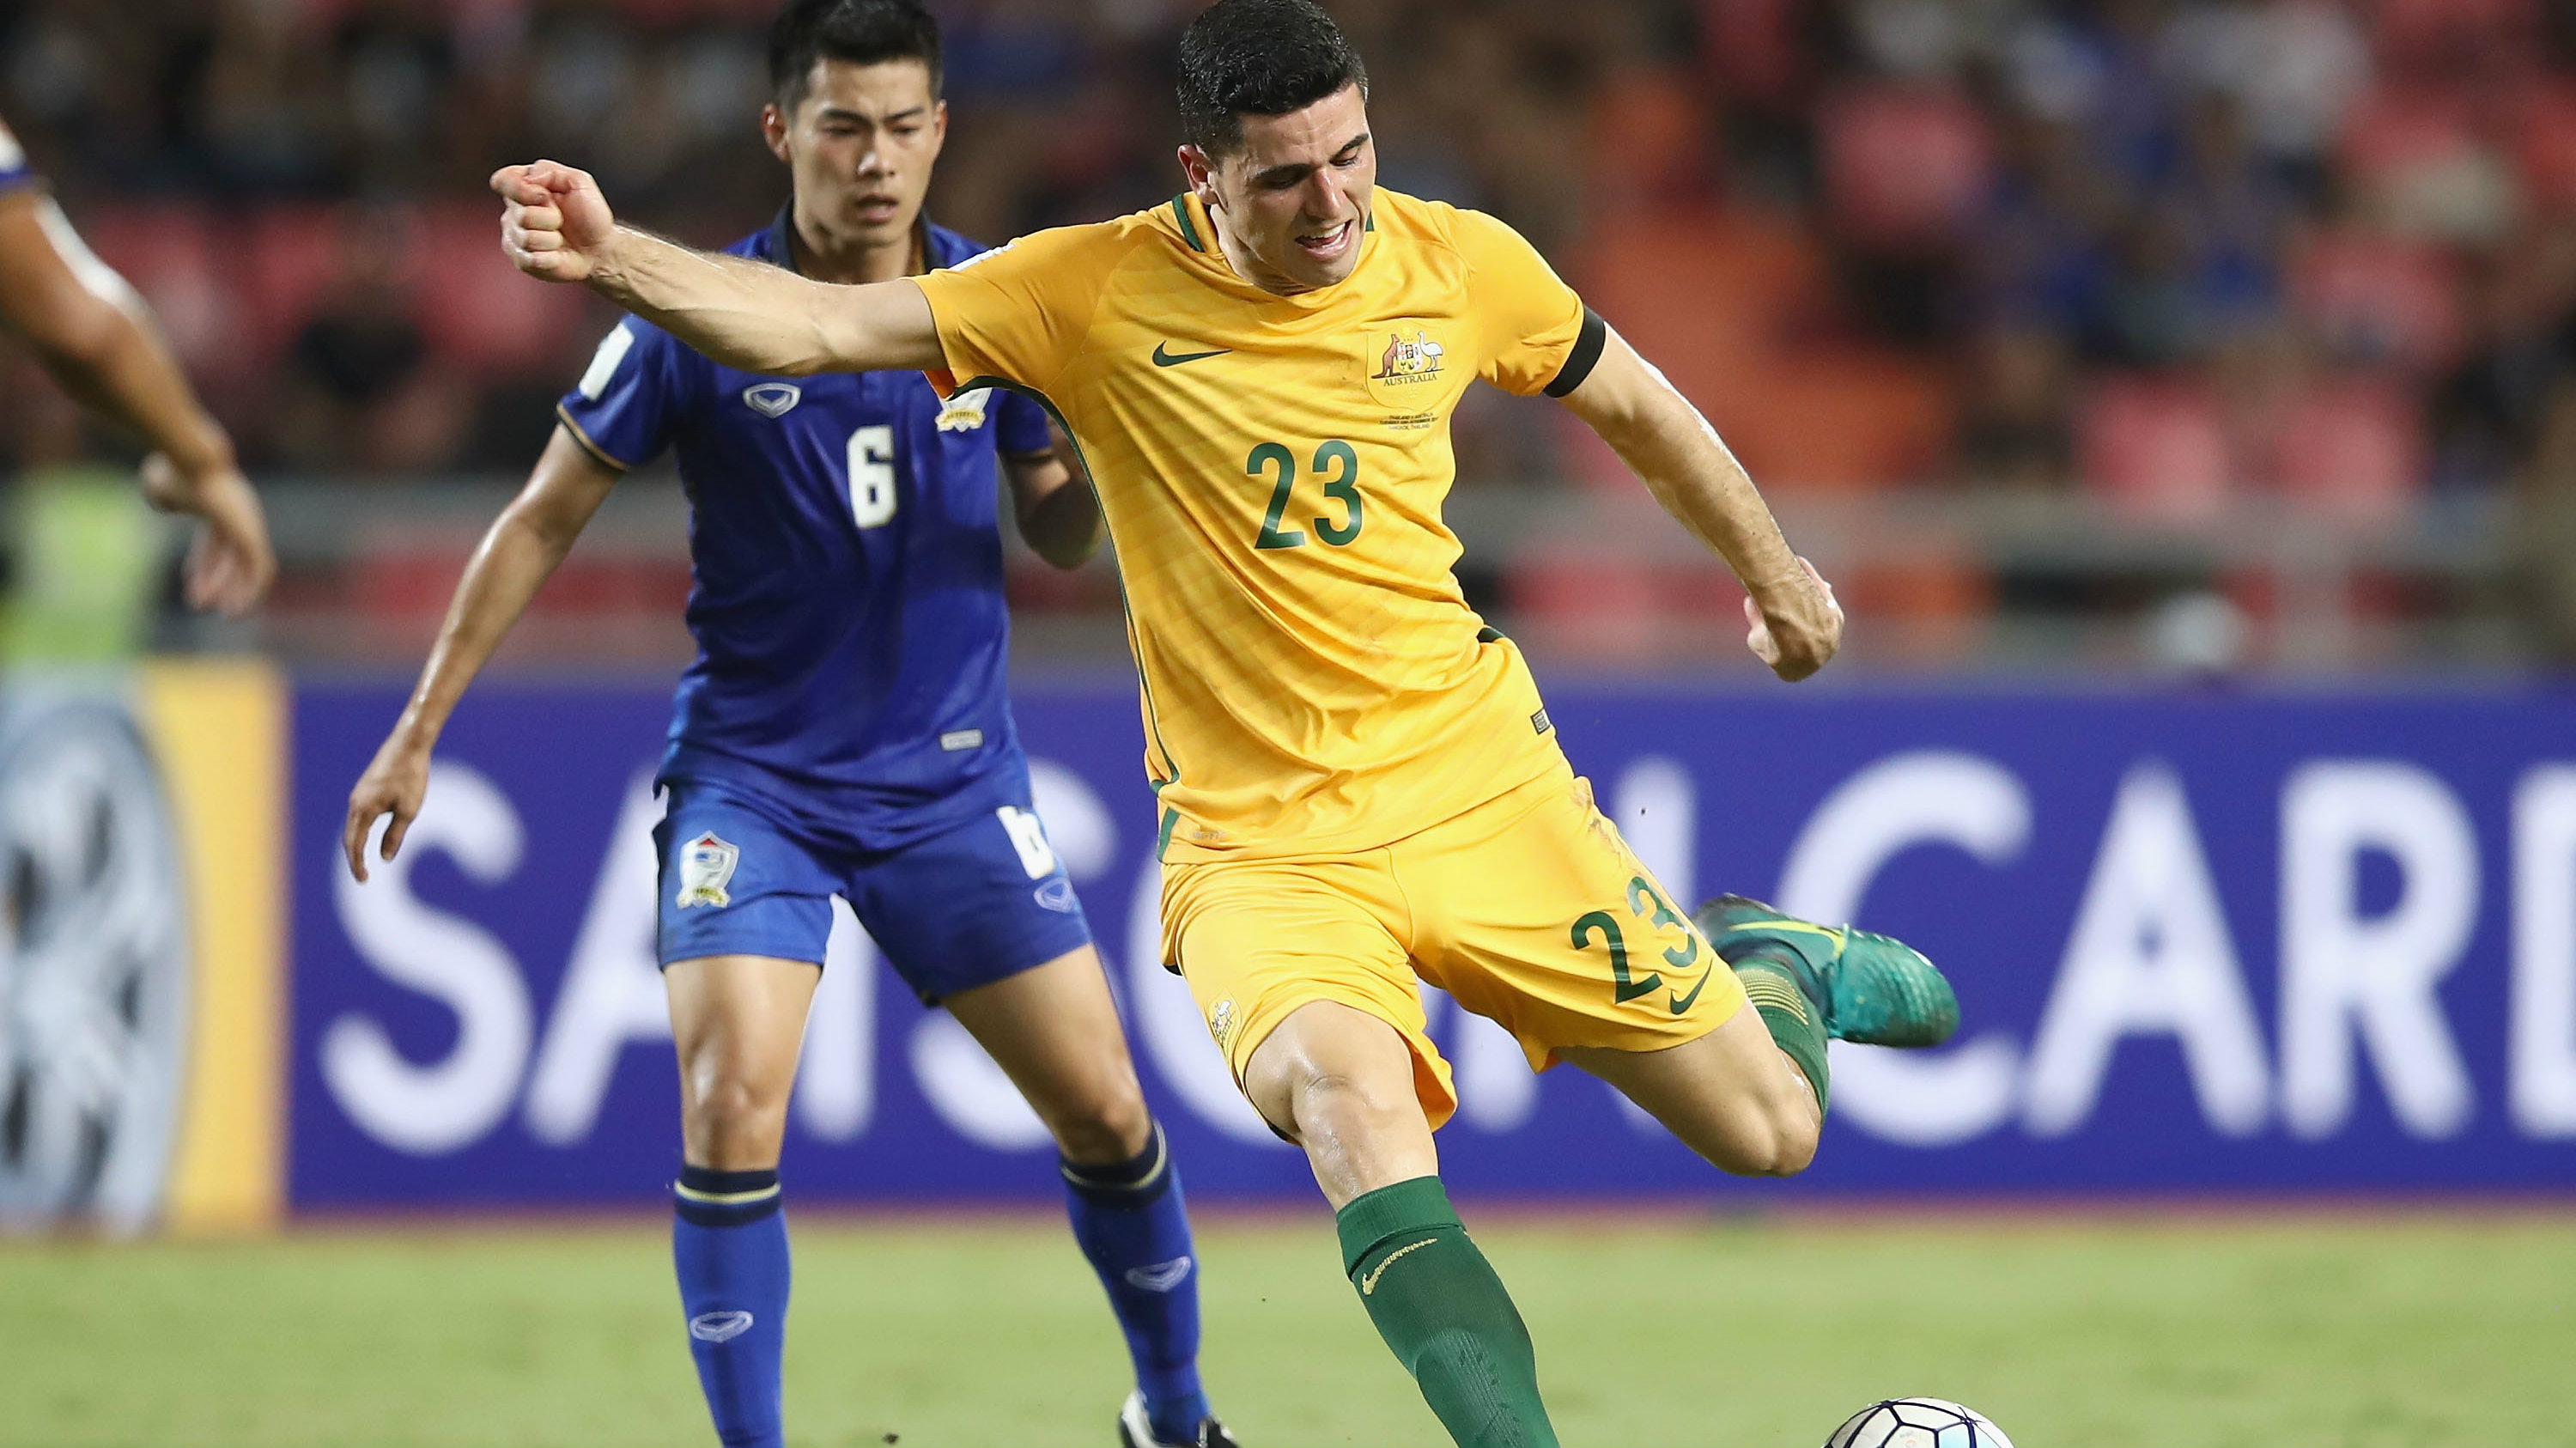 Caltex Socceroos star Tom Rogic on the ball during Australia's 2-2 draw with Thailand in November.